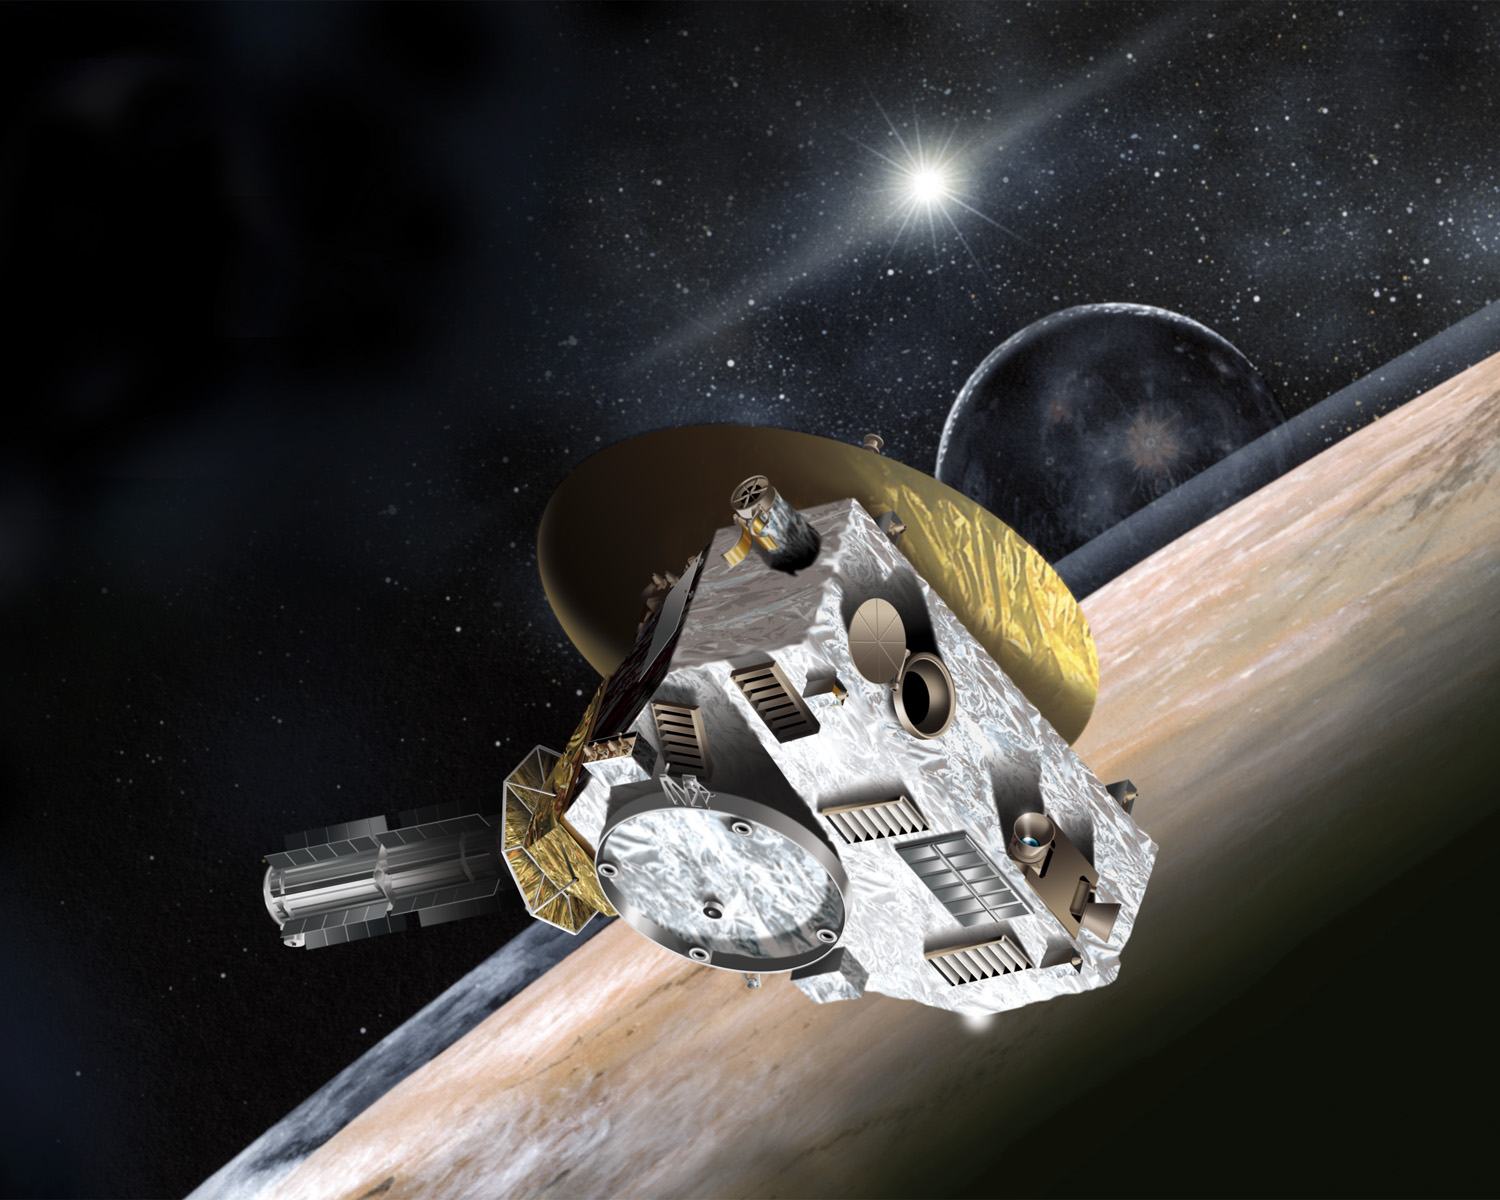 Artist's impression of the New Horizons Pluto Kuiper Belt Flyby, NASA JPL illustration new_horizons.jpg